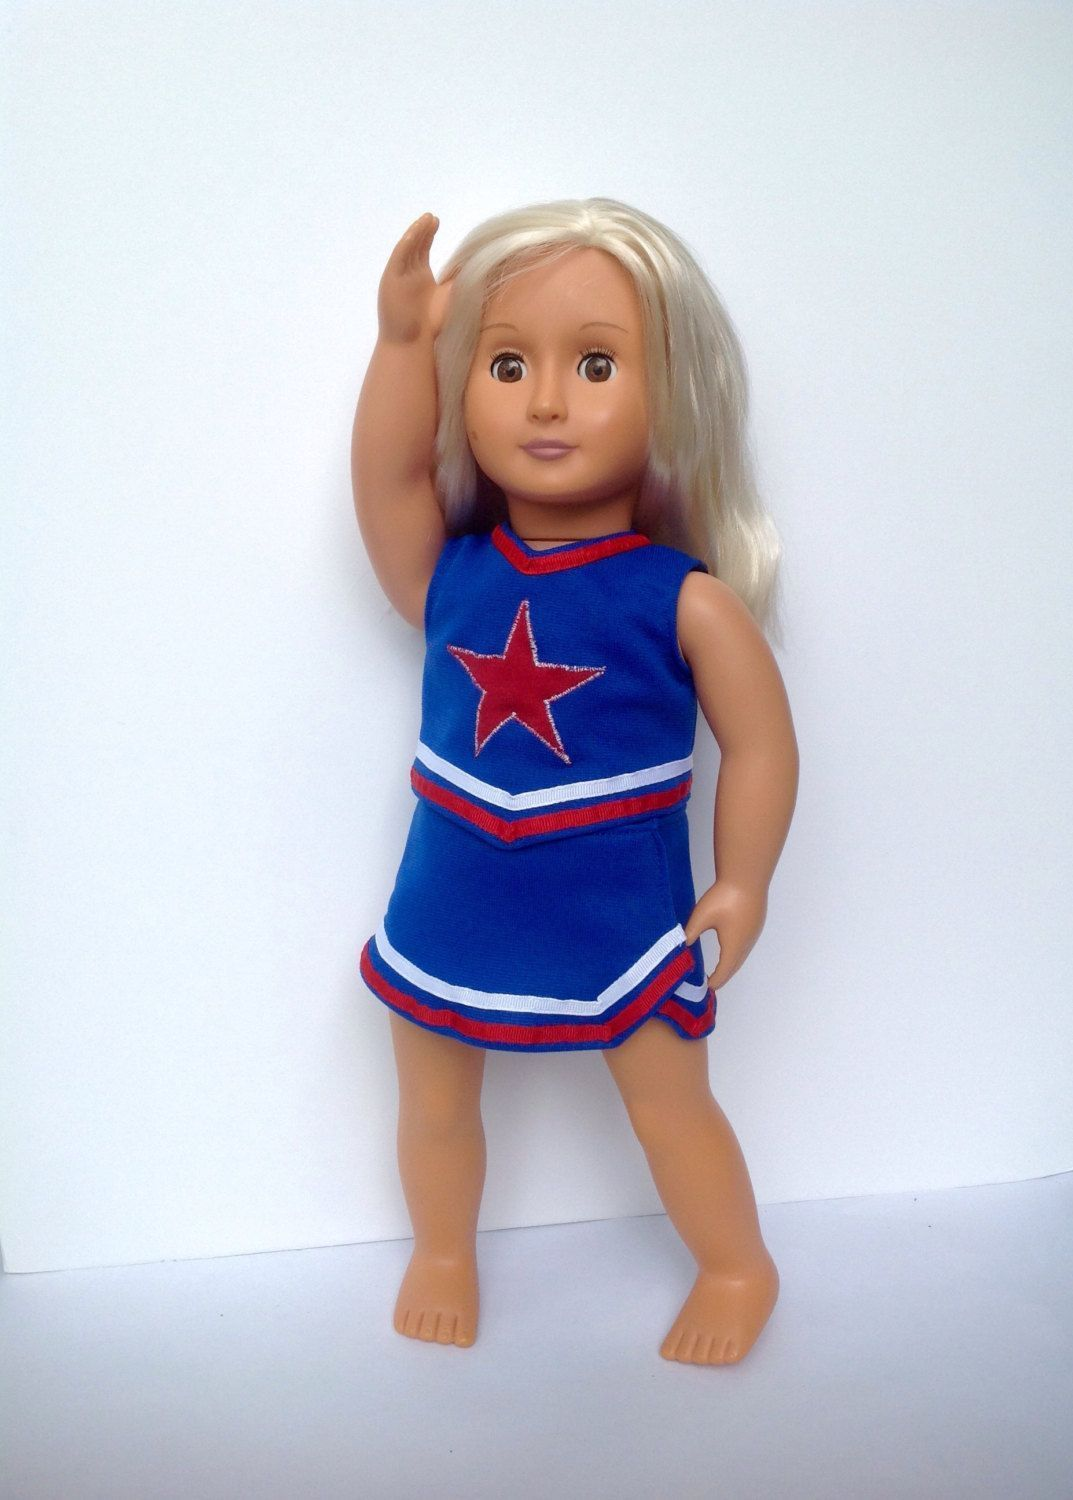 Cheerleader outfit for 18 inch dolls, red white and blue cheer skirt and top   Dresses   Doll Clothes #18inchcheerleaderclothes #18inchcheerleaderclothes Cheerleader outfit for 18 inch dolls, red white and blue cheer skirt and top   Dresses   Doll Clothes #18inchcheerleaderclothes #18inchcheerleaderclothes